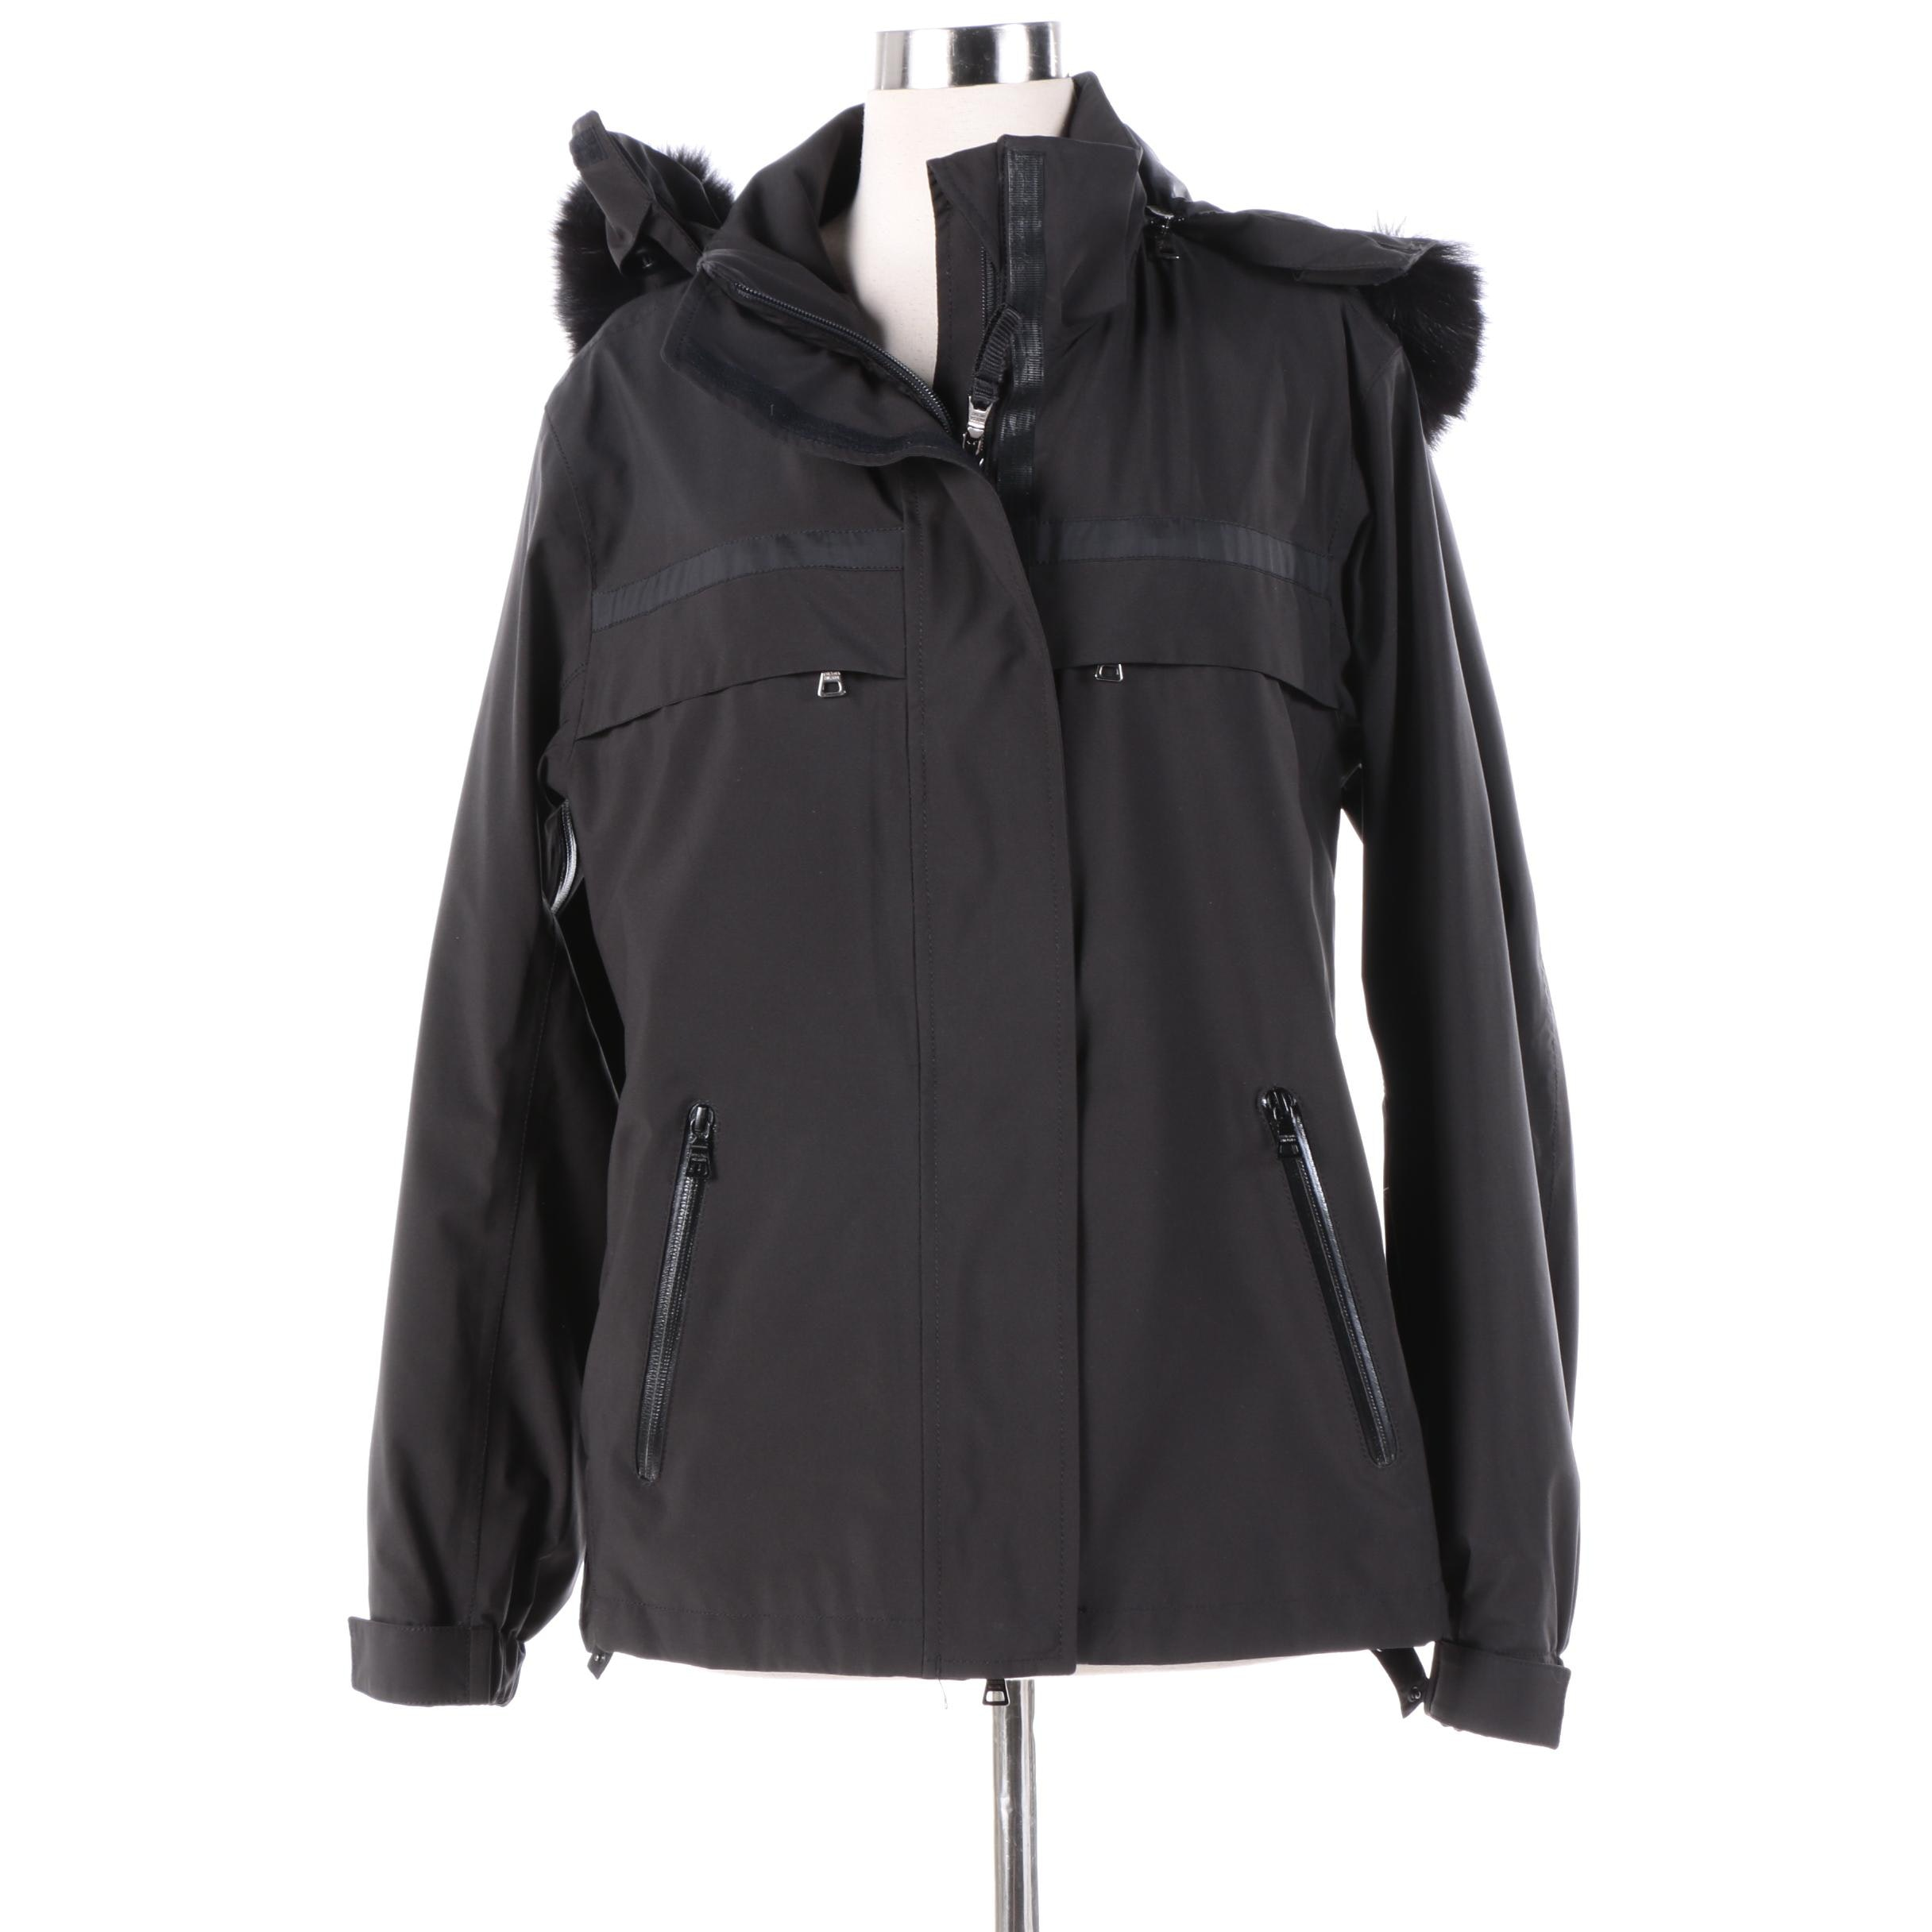 Women's Prada Black Parka with Fox Fur Trim Removable Hood